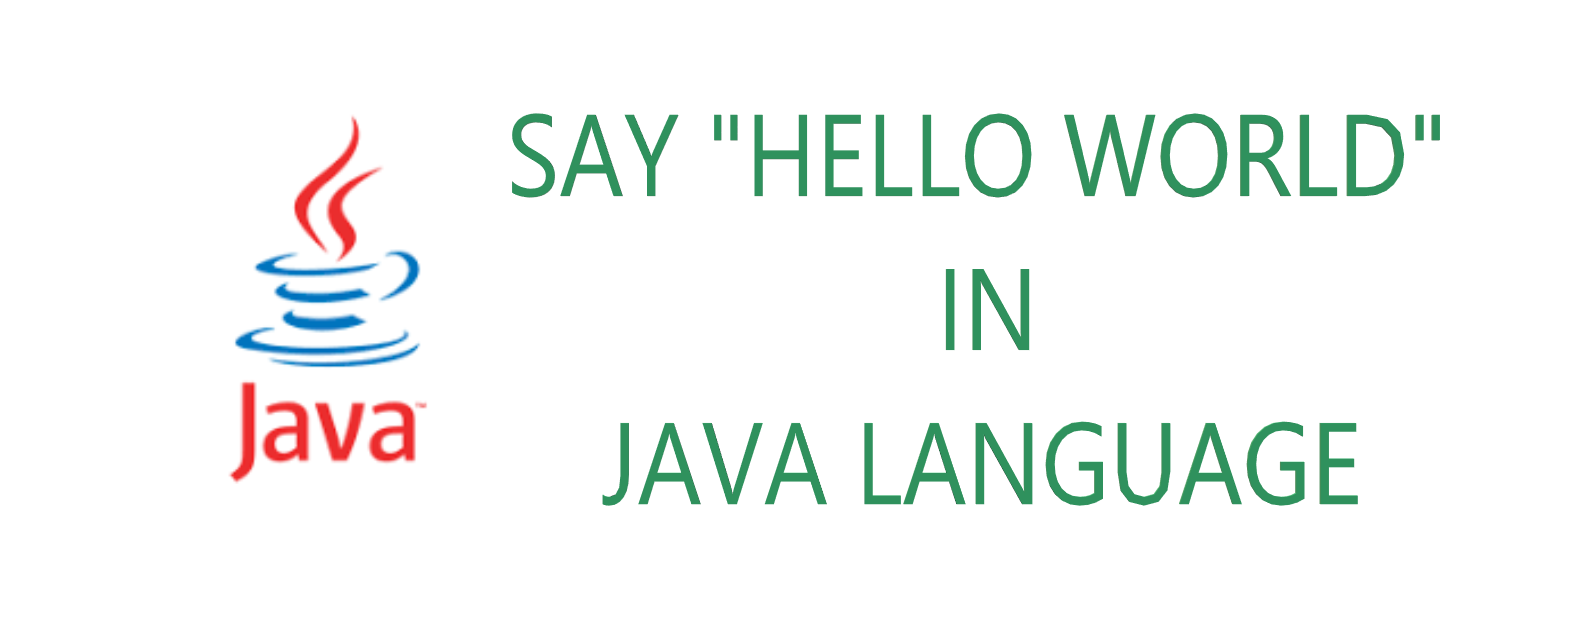 java helloworld